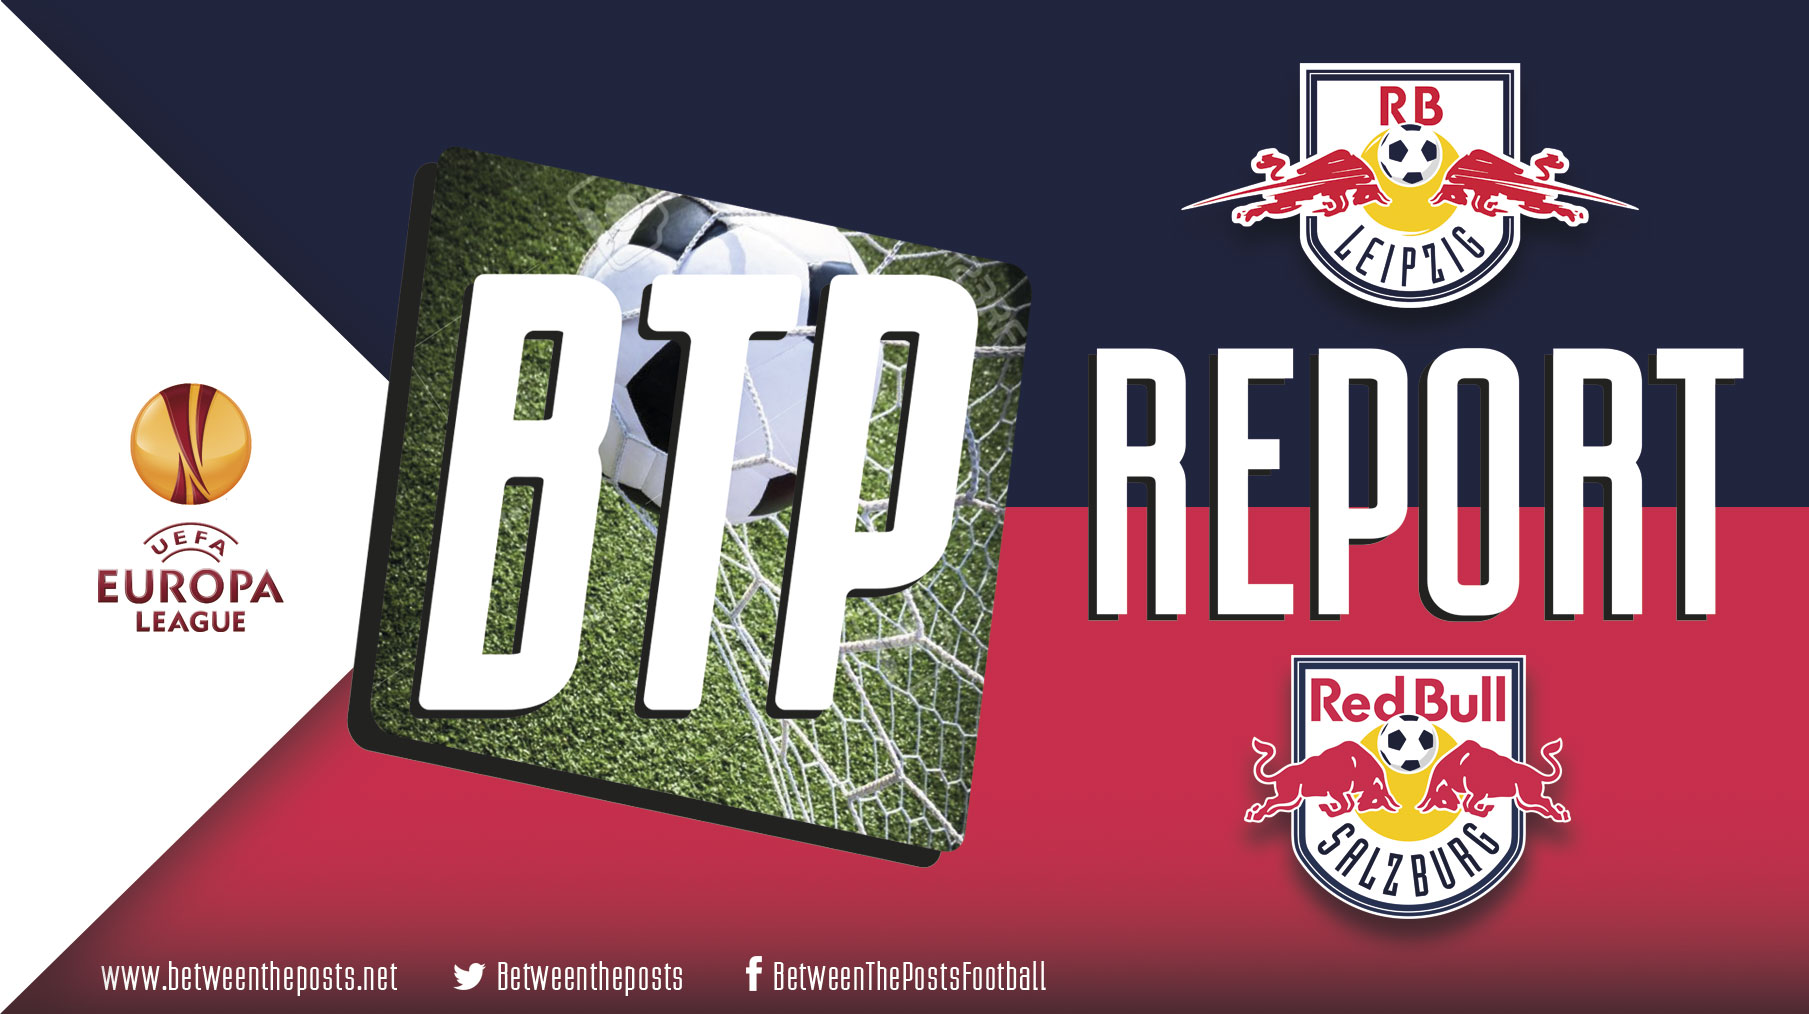 Rb Leipzig Vs Red Bull Salzburg A Confident Salzburg Defeats Its Big Brother In A Thrilling Finish 2 3 Between The Posts